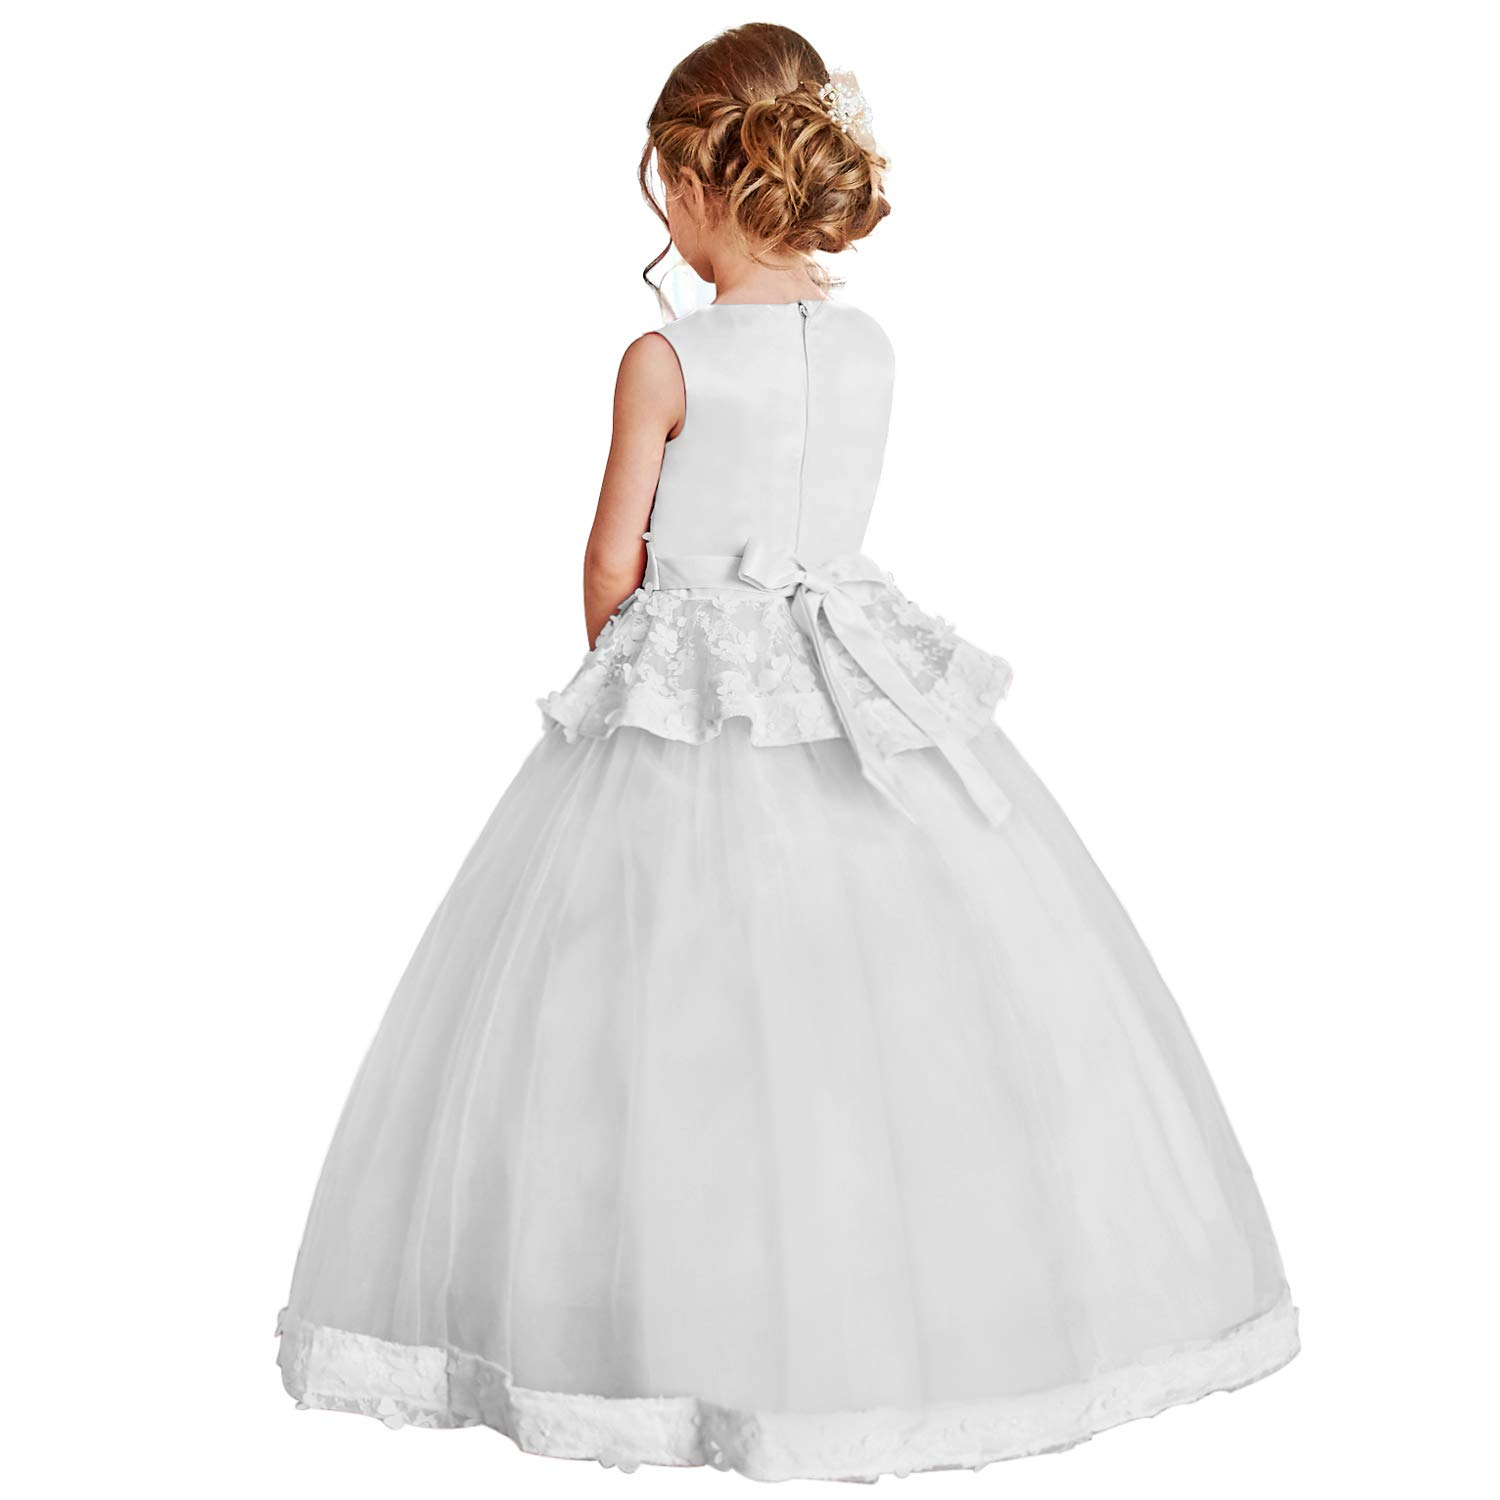 TTYAOVO Girls Embroidered Prom Gowns Classic Birthday Wedding Party Long Dresses